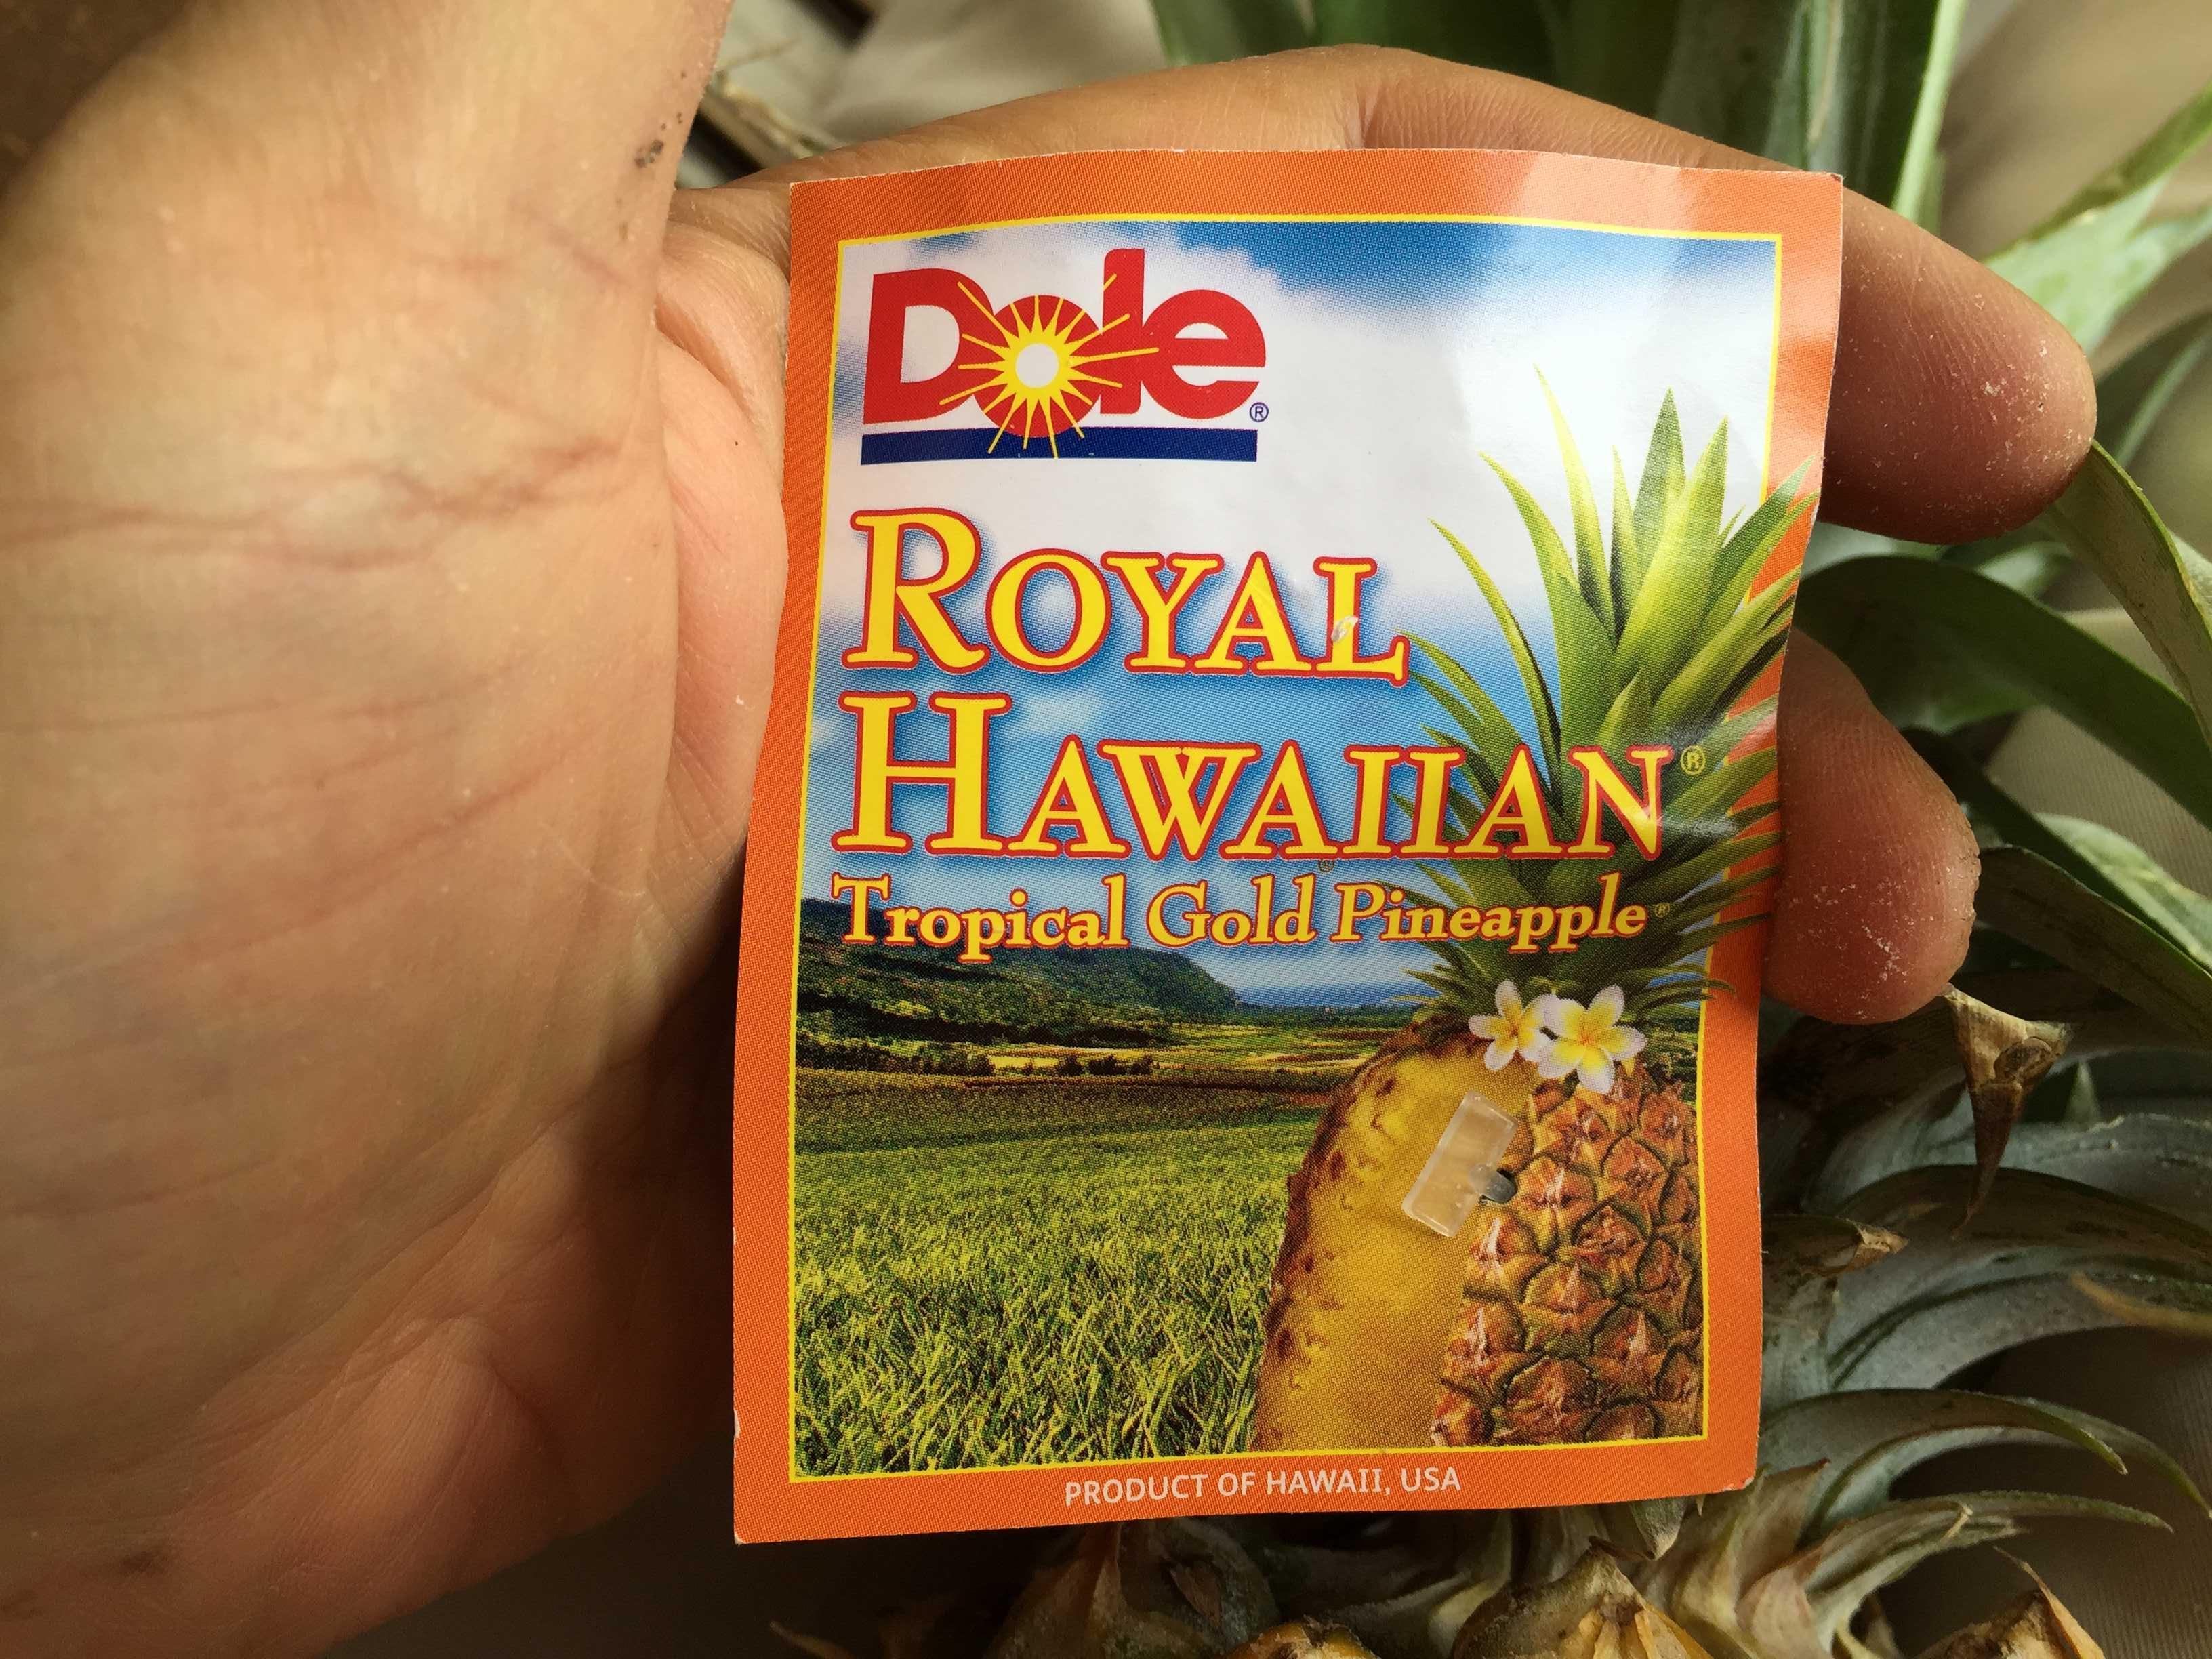 Dole(ドール) ROYAL HAWAIIAN Tropical Gold Pineapple